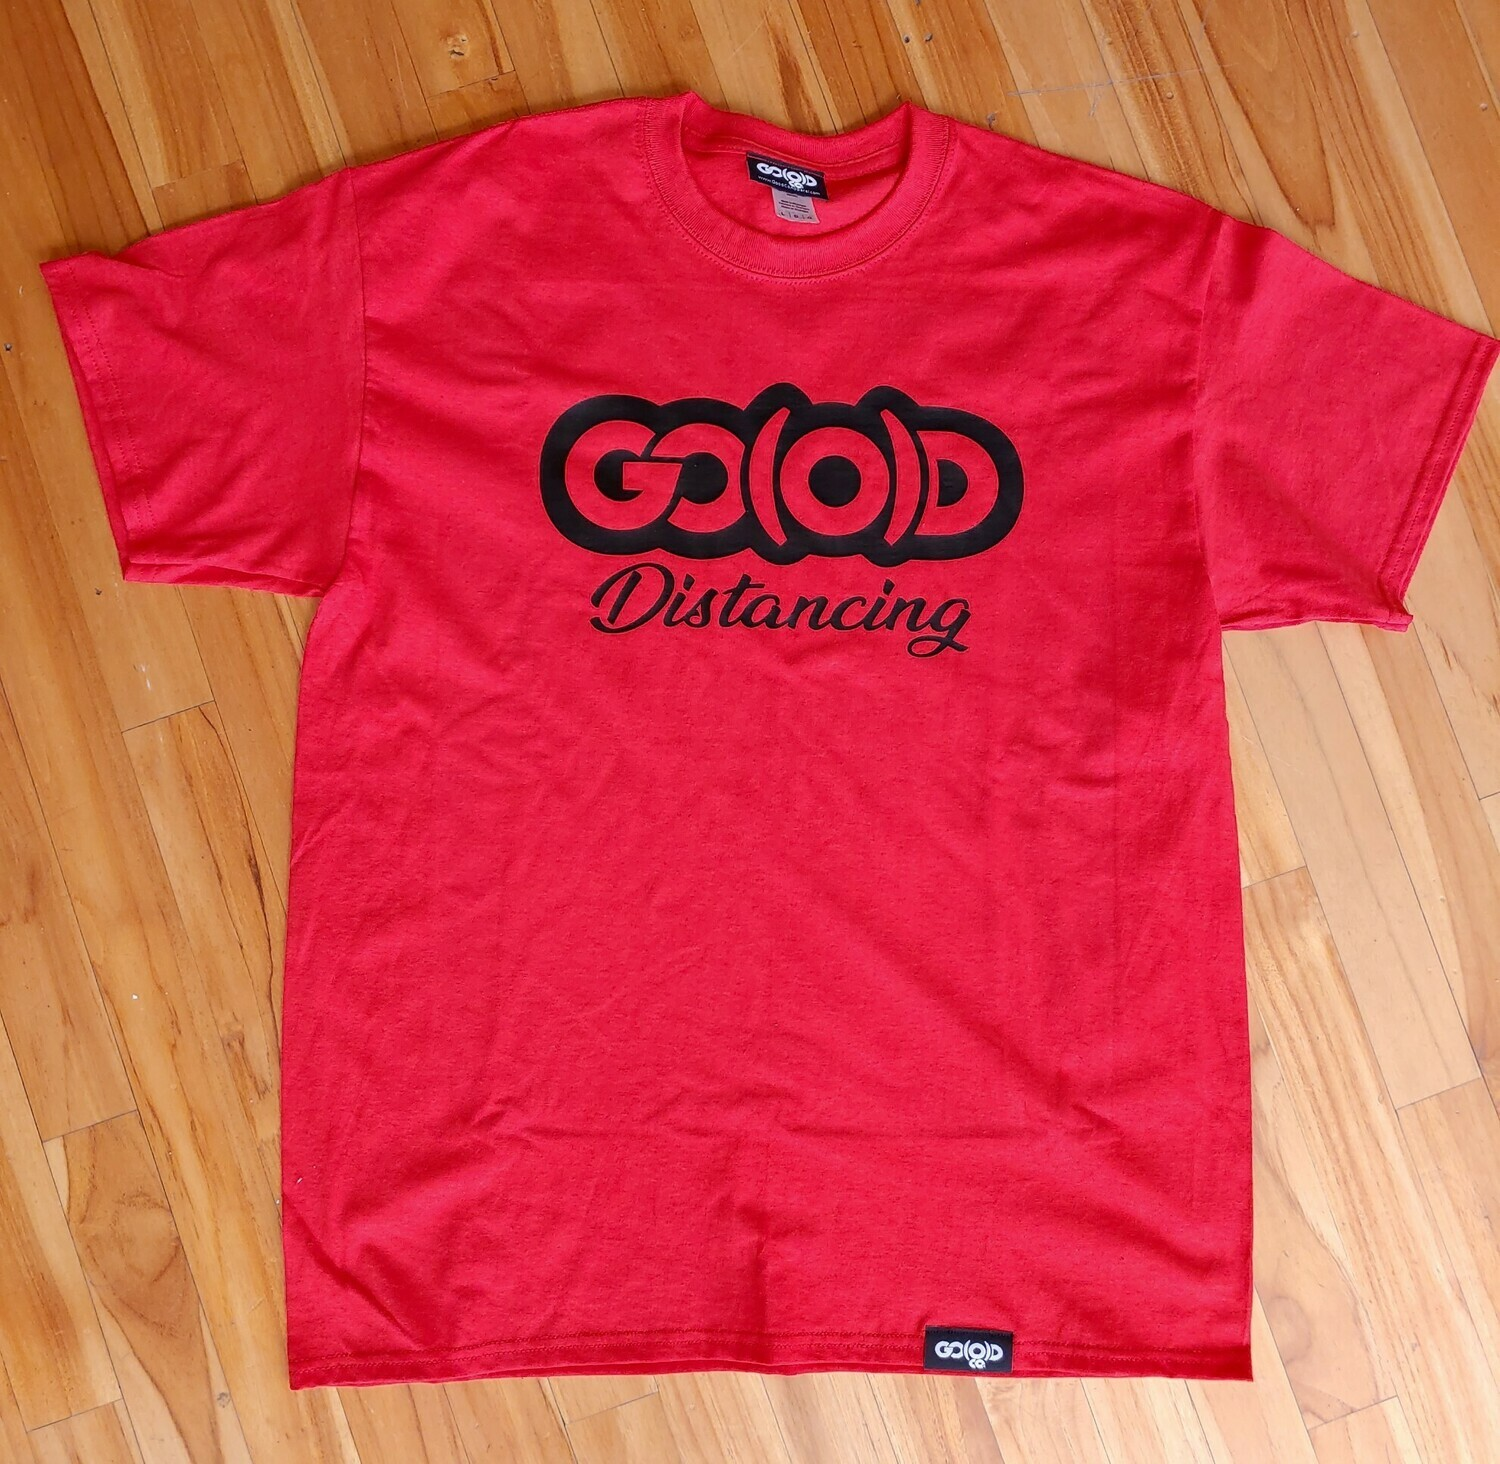 GO(O)D Distancing tee-red/black